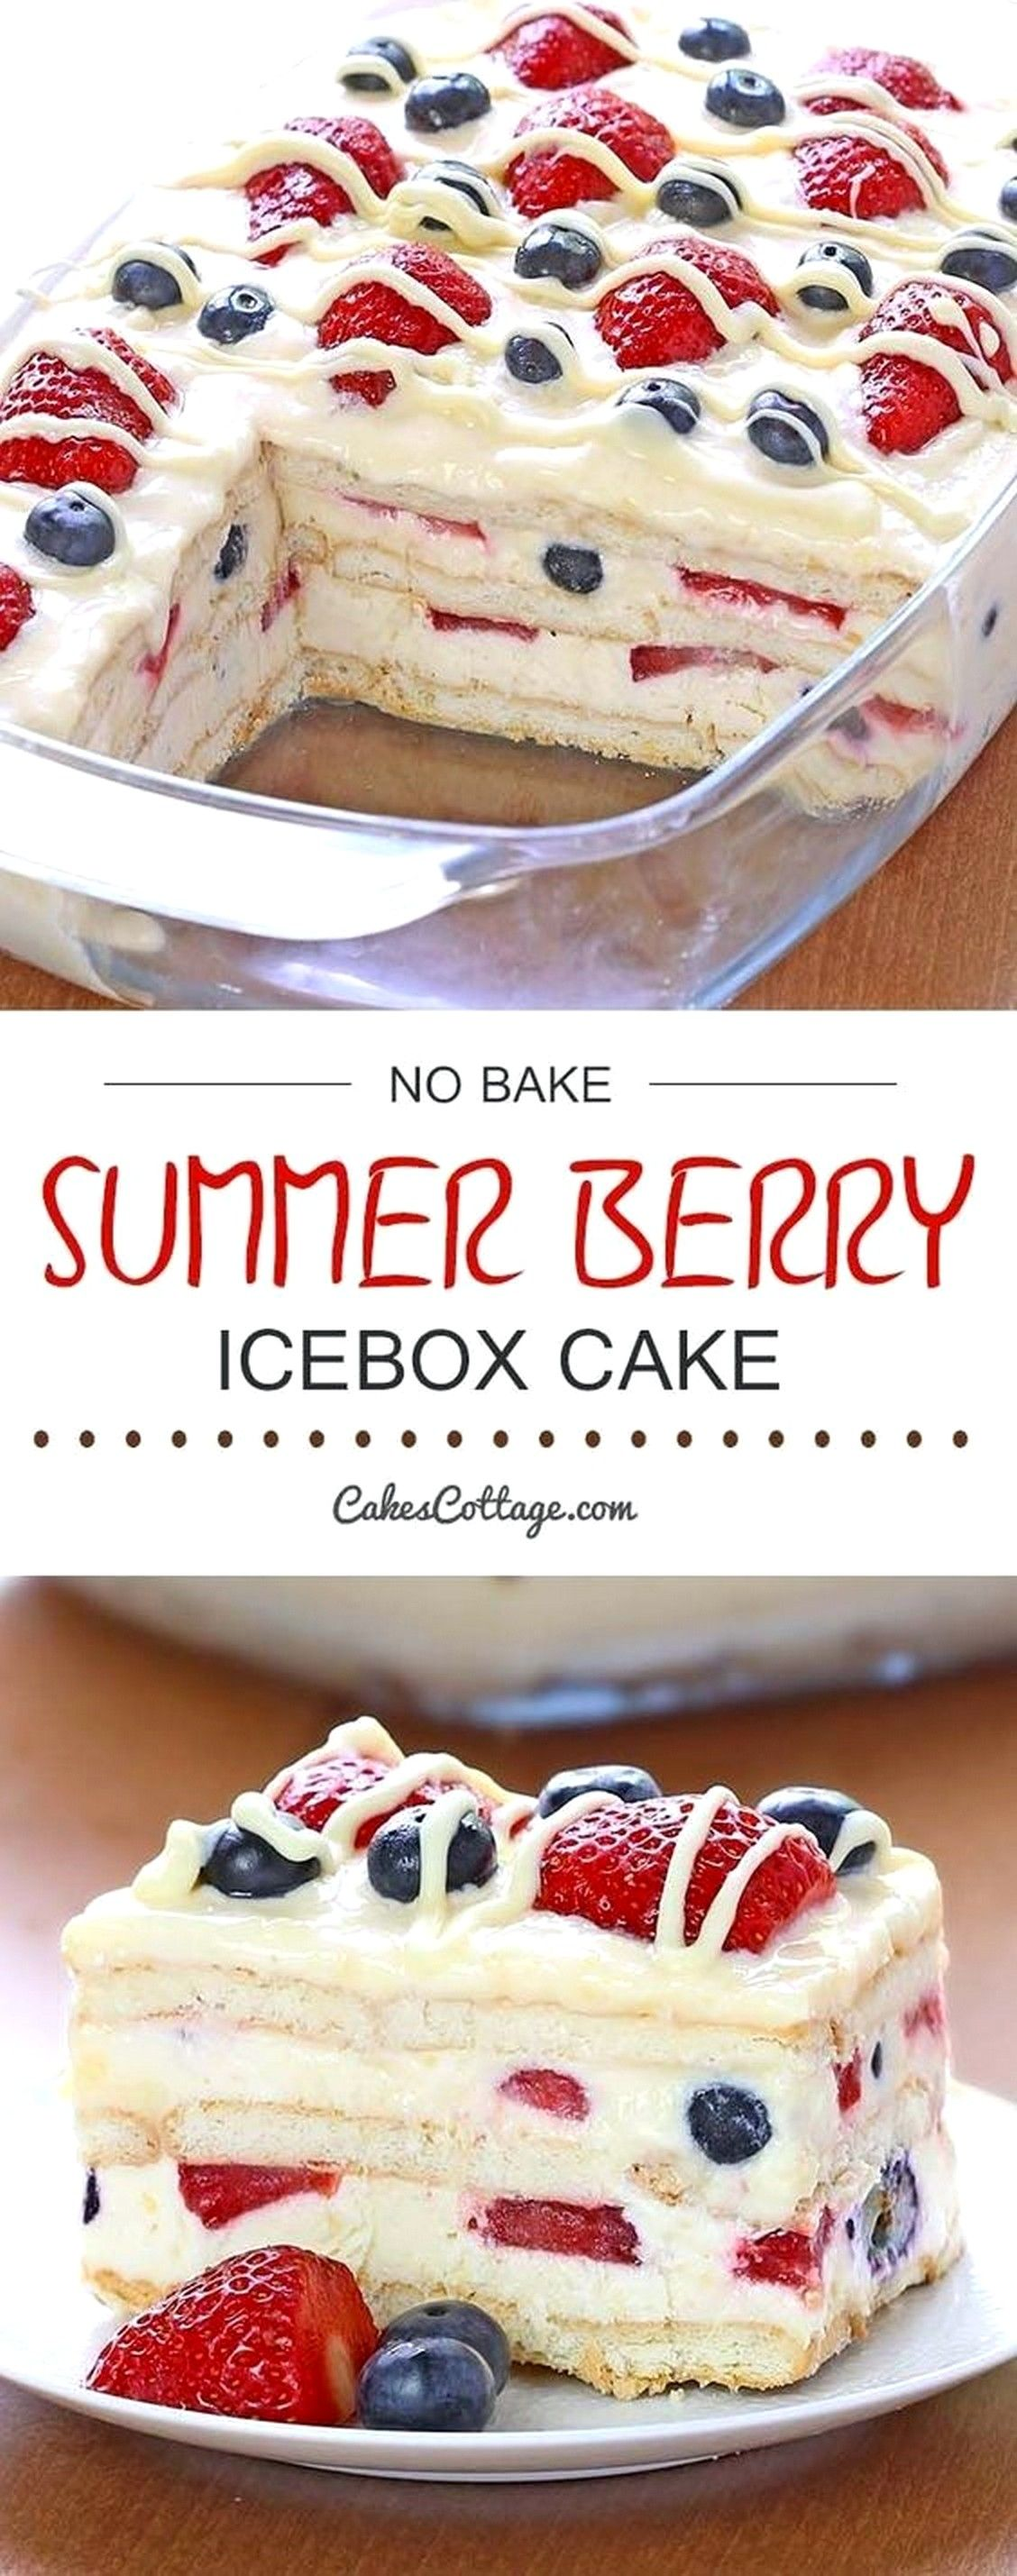 No Bake Summer Berry Icebox Cake | Baking Recipes #quickcookierecipes